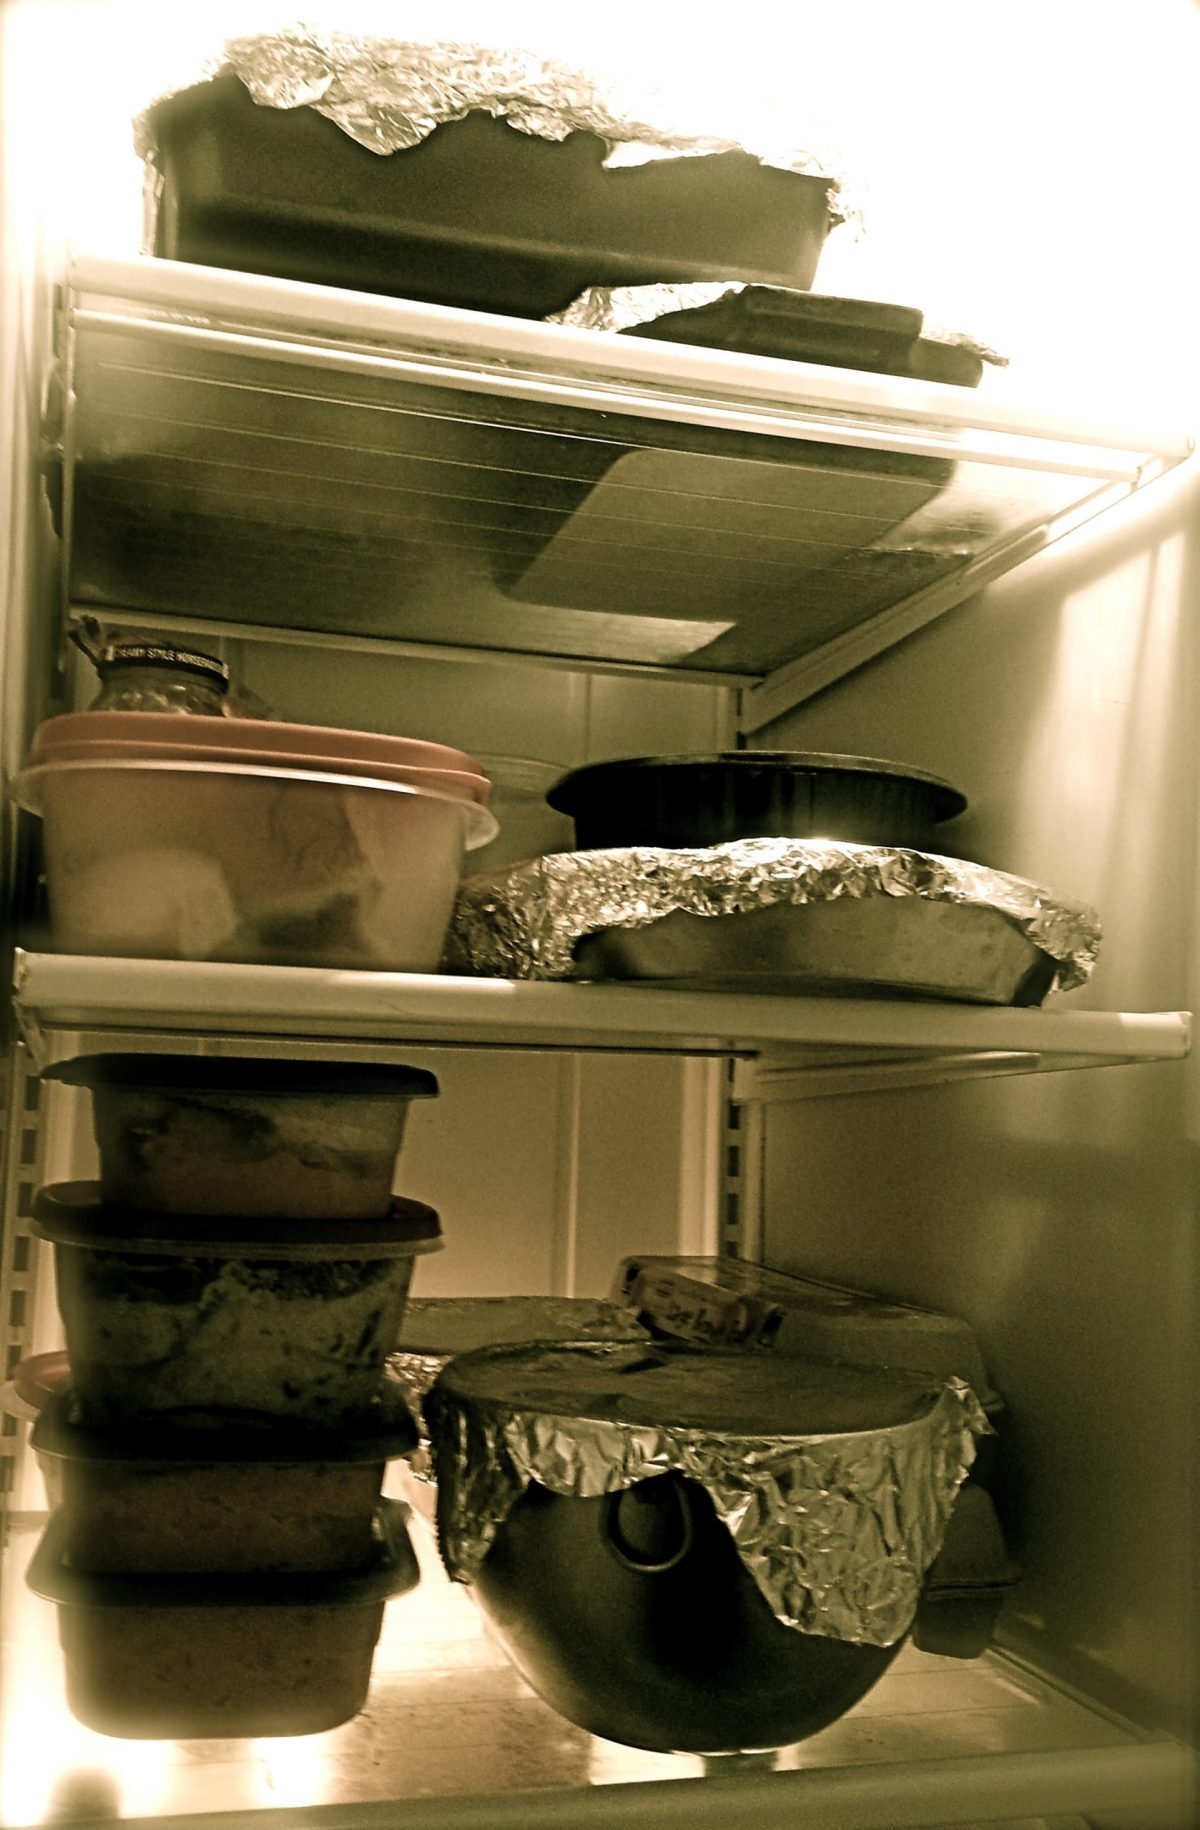 Thanksgiving 2013 leftovers. Photo by Iris Dimmick.